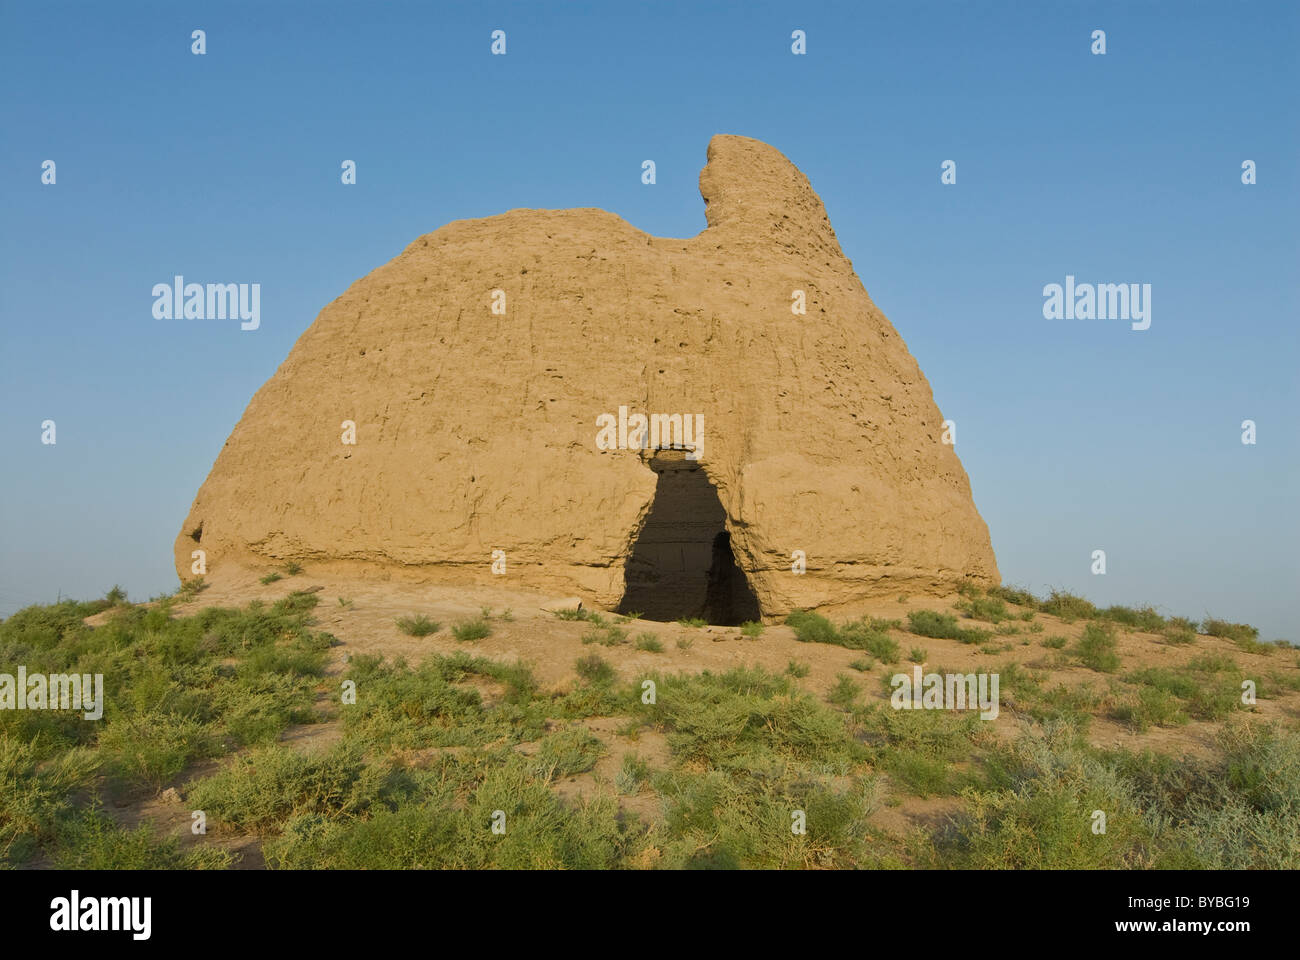 Former ice house, Merv, Turkmenistan, Central Asia - Stock Image